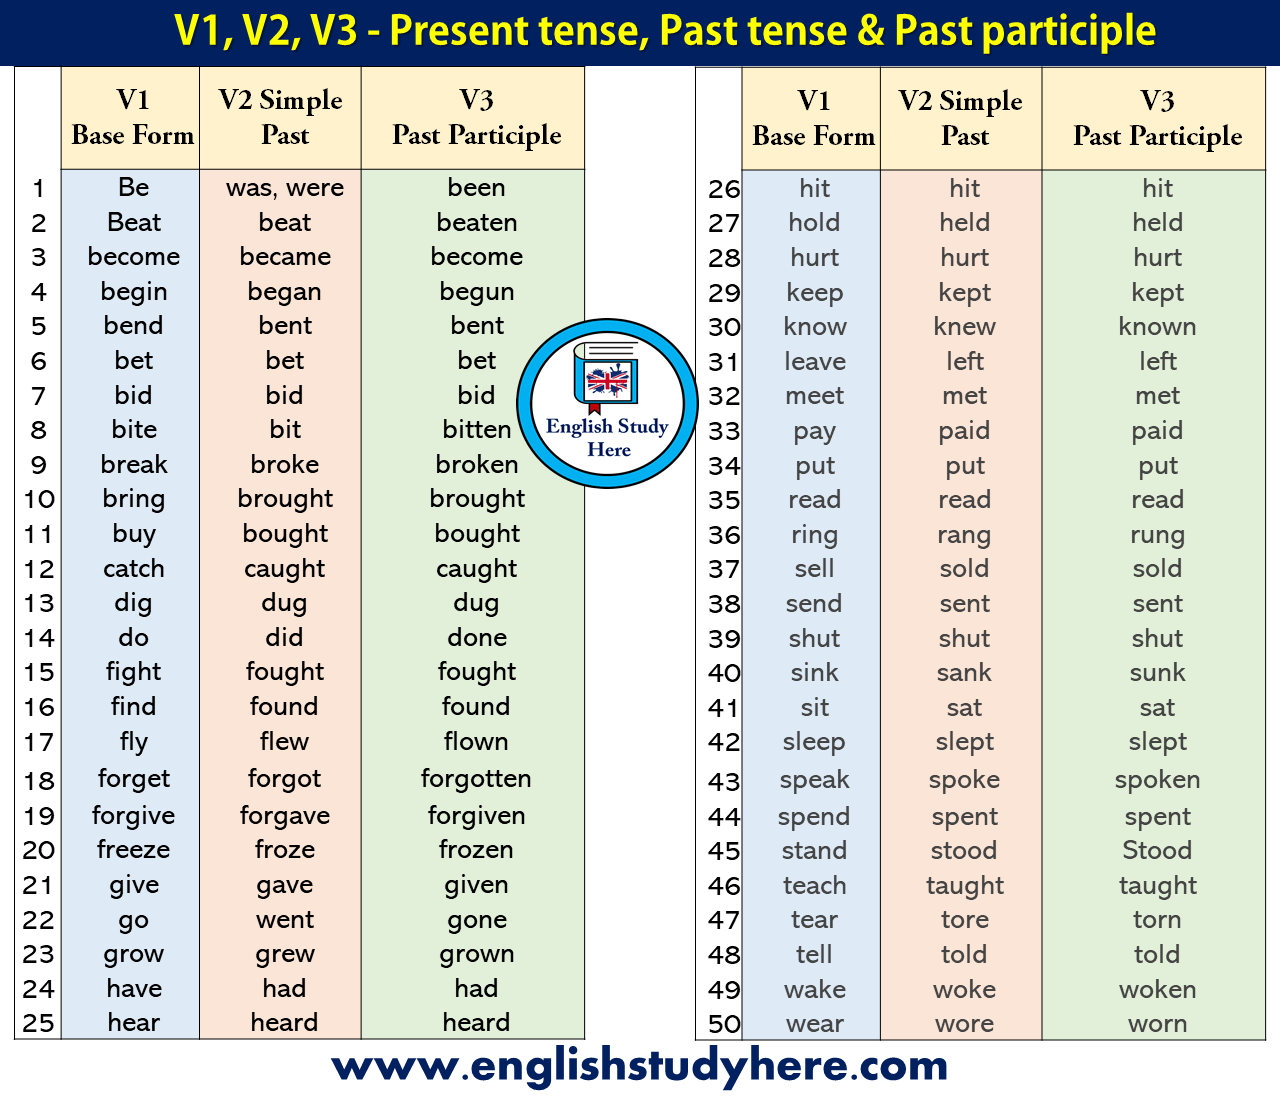 50 Examples Of Present Tense Past Tense And Past